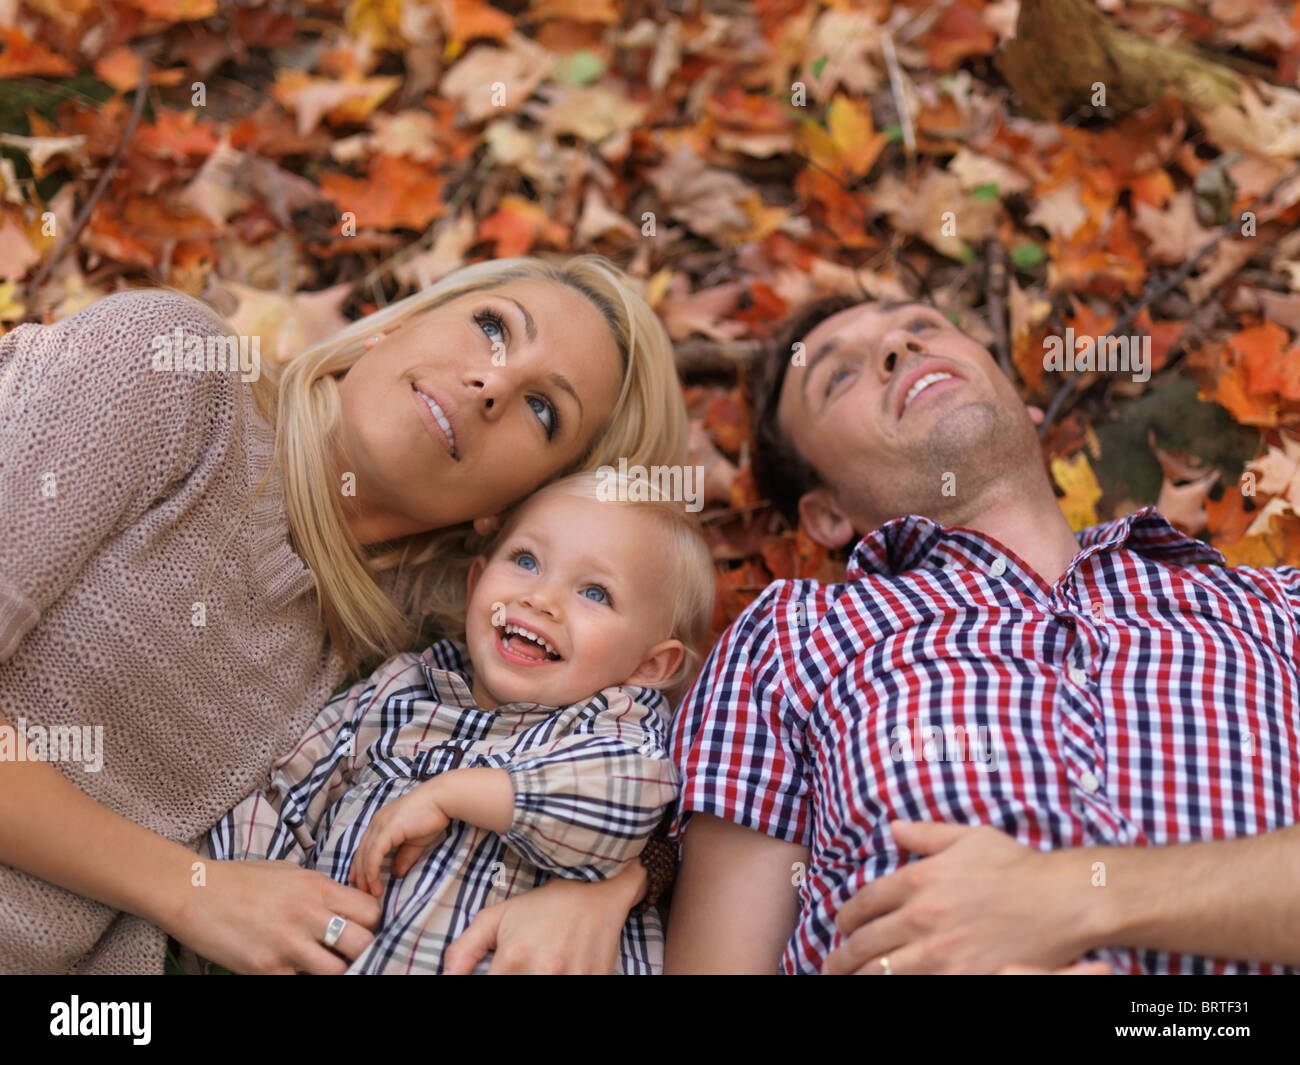 Happy smiling young parents and a two year old girl lying on colorful fallen tree leaves in autumn nature - Stock Image